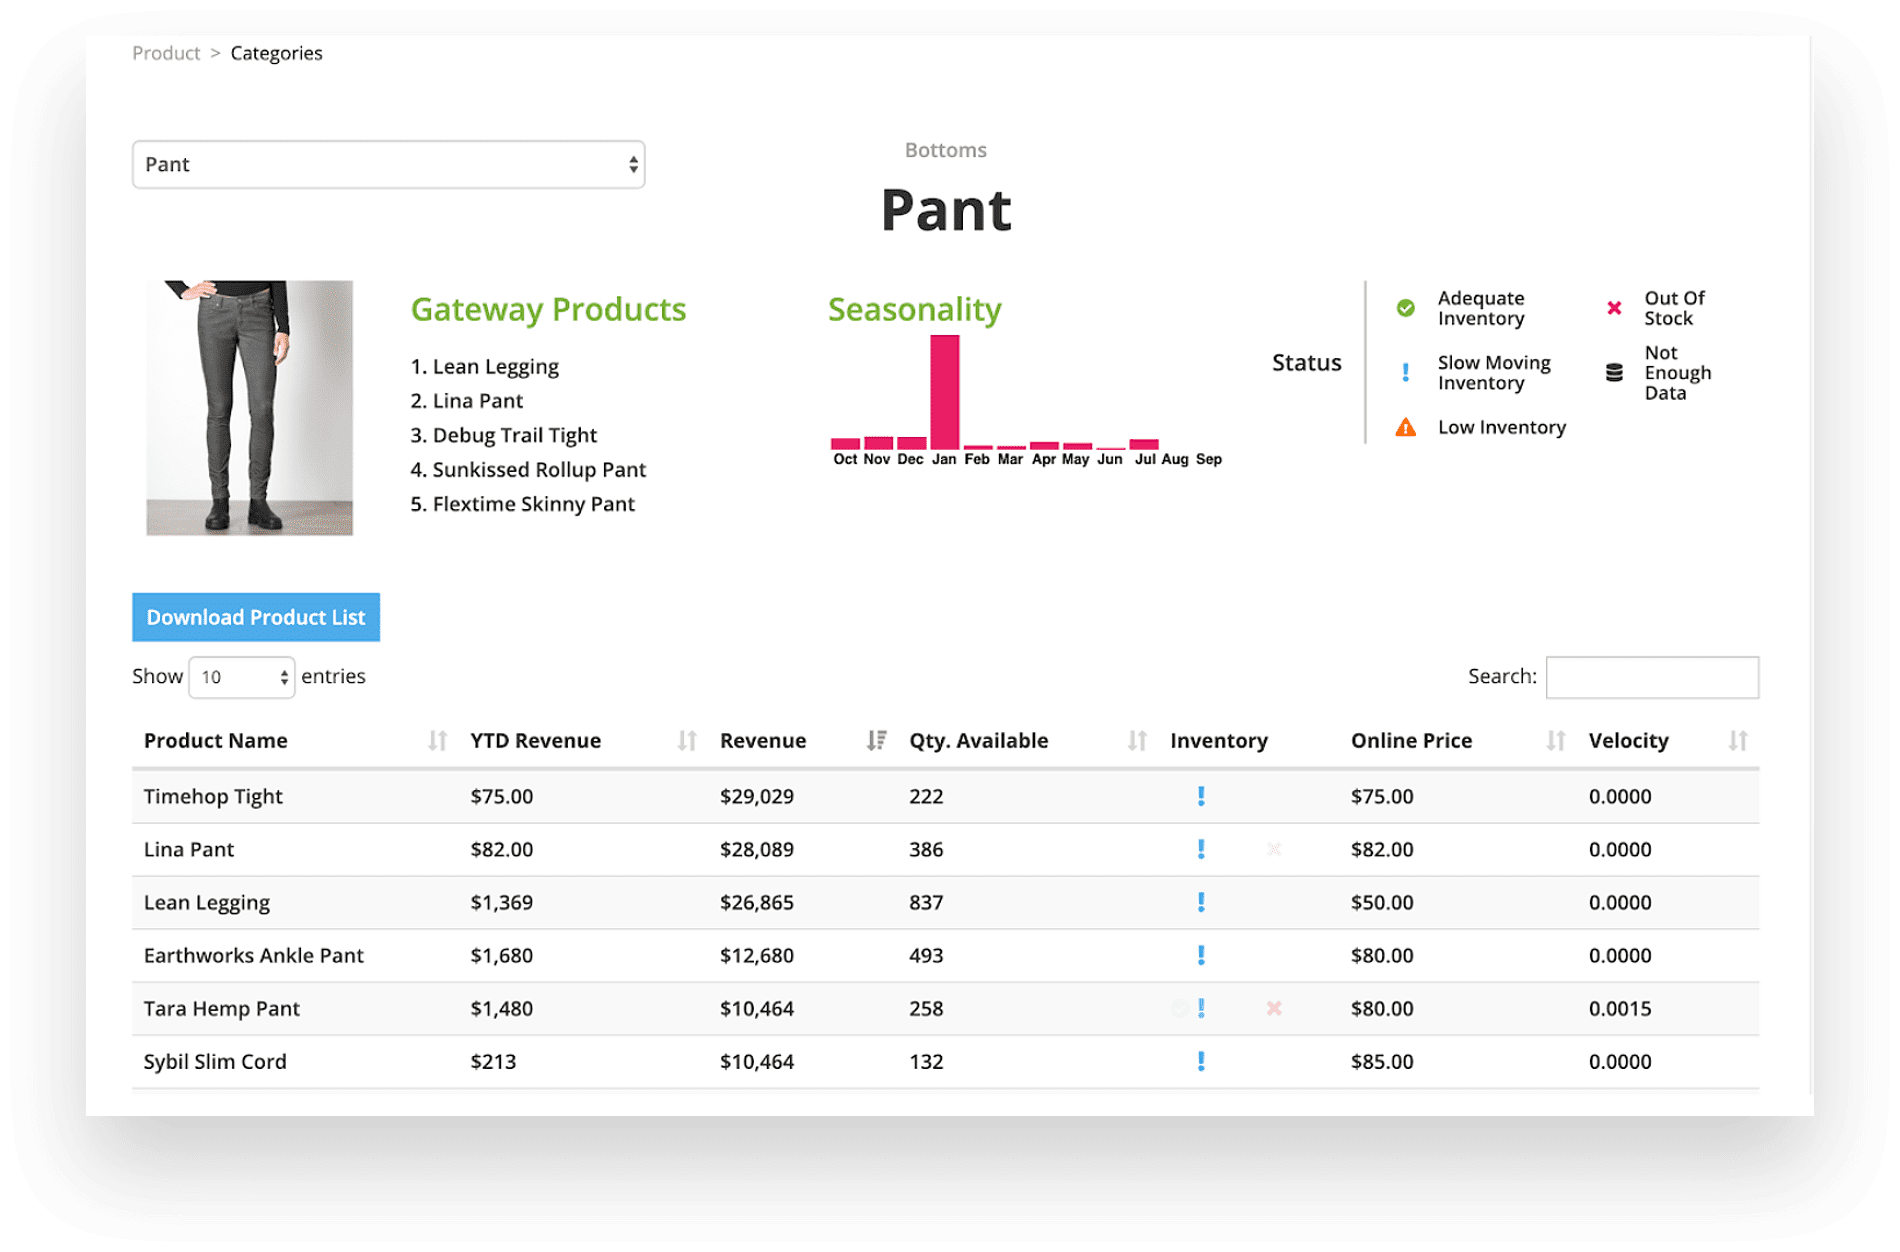 Inventory analysis with product information